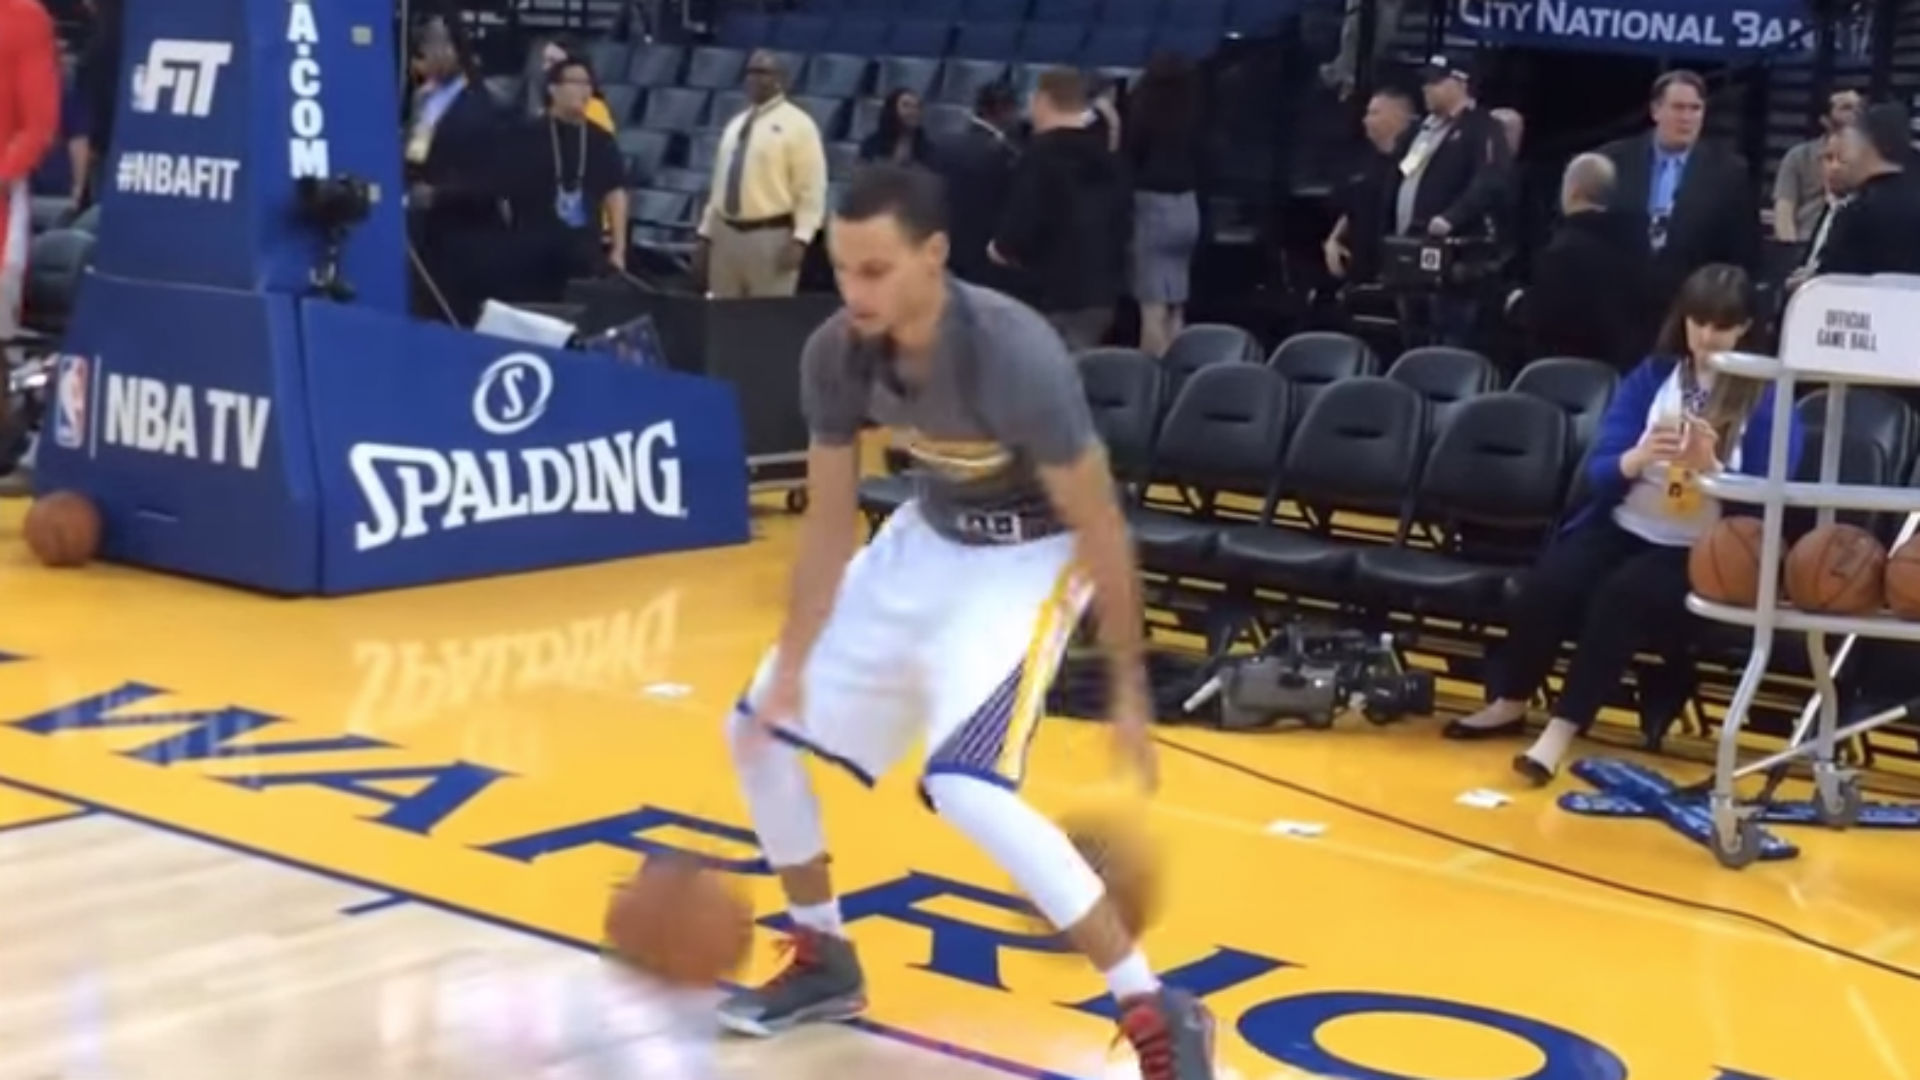 Stephen Currys Dribbling Skills Recreated In Animated Video Nba